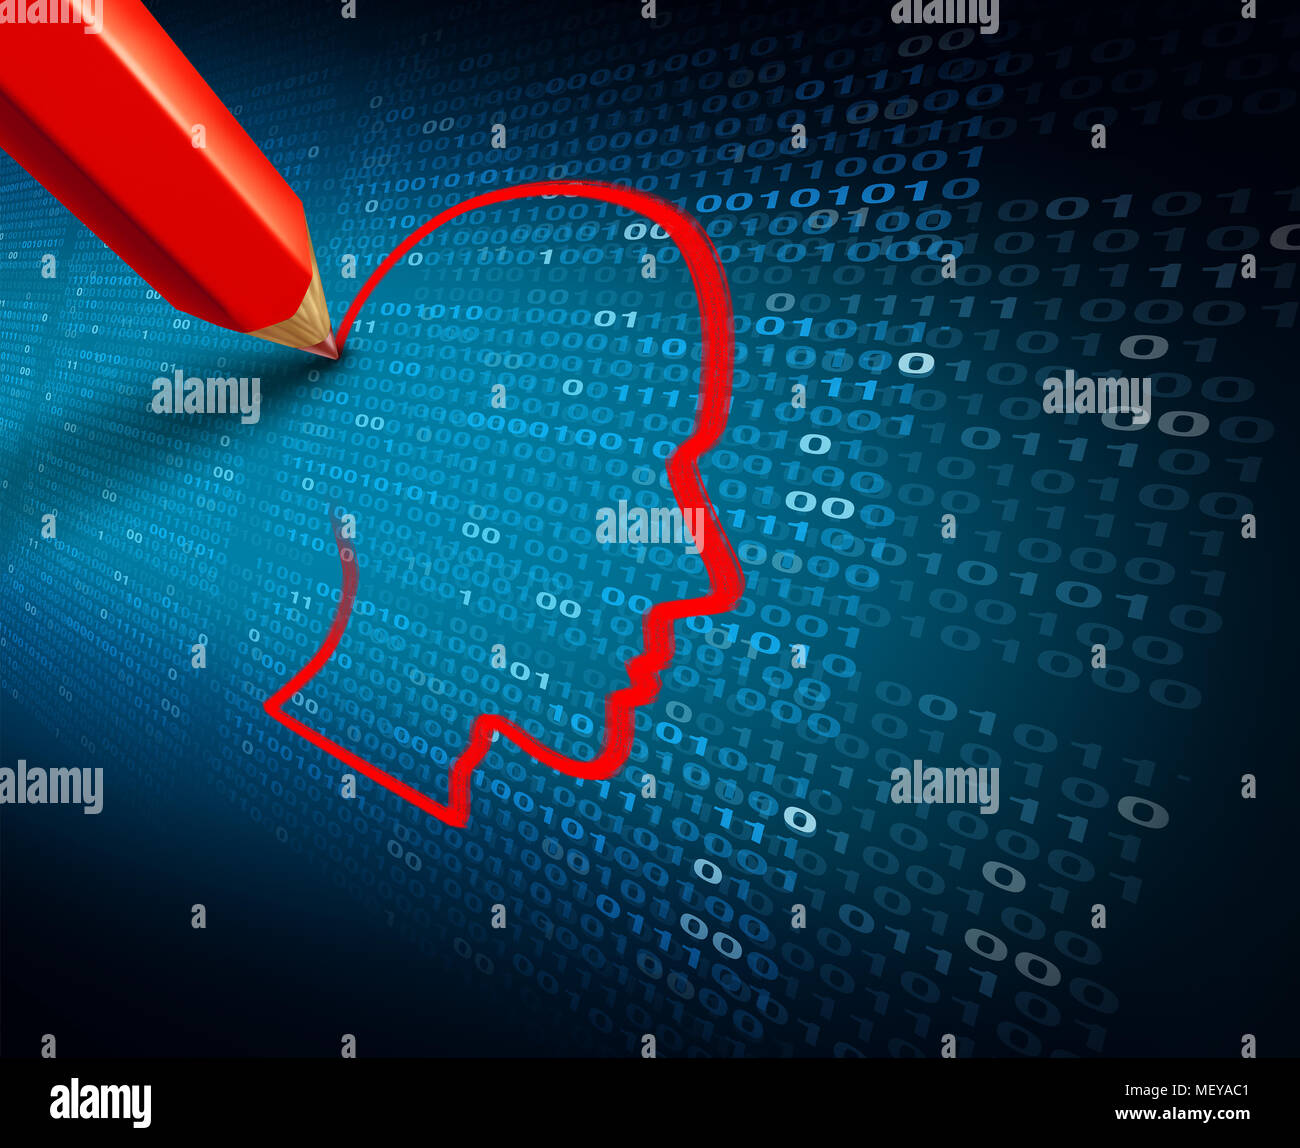 Phishing and private data hack and stealing personal information as a as a cybercrime or cyber crime social media security concept. - Stock Image